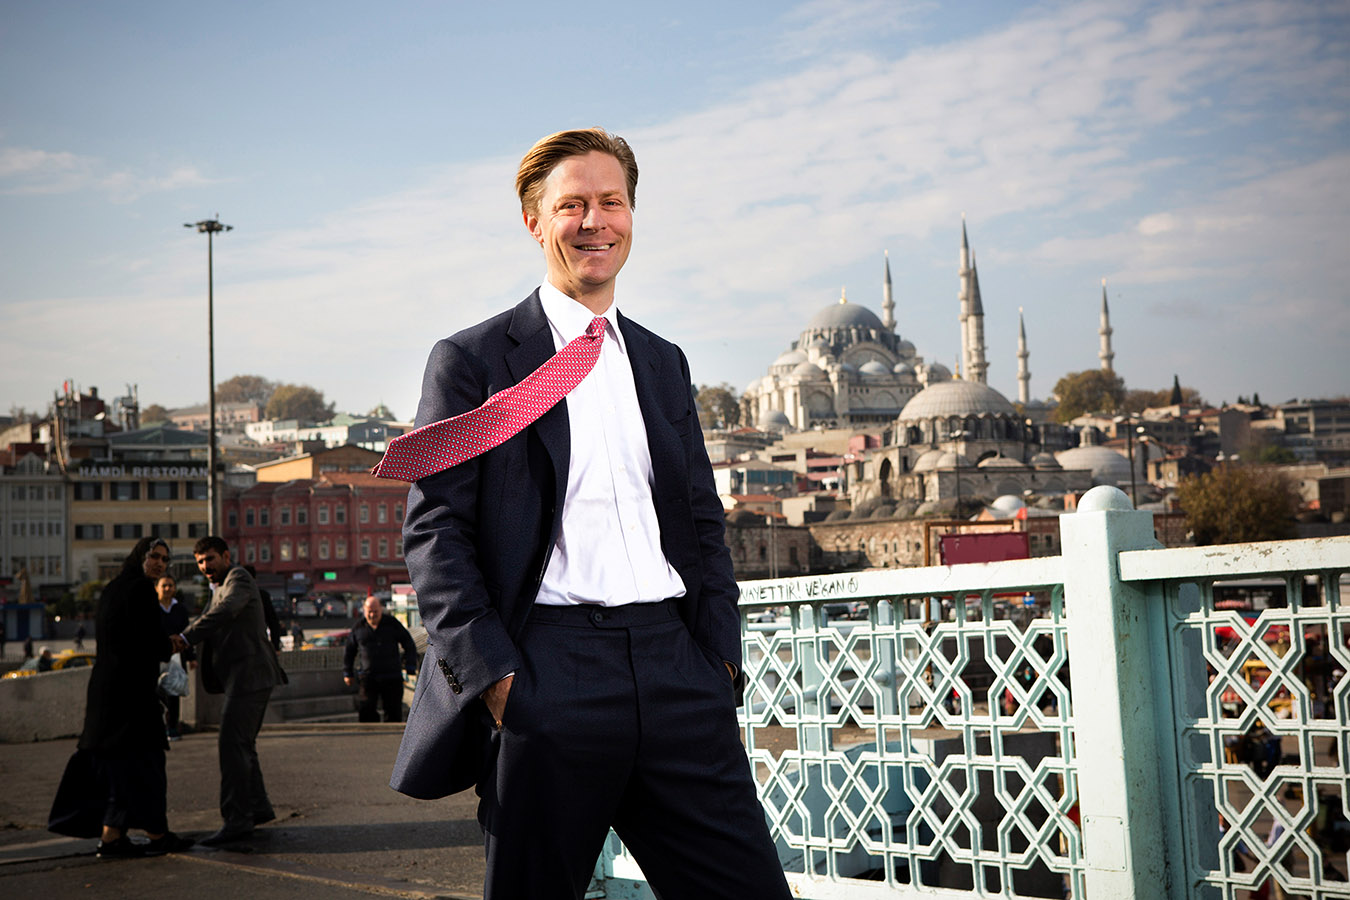 Carlos von Hardenberg poses for a photograph at Galata Bridge of Istanbul.